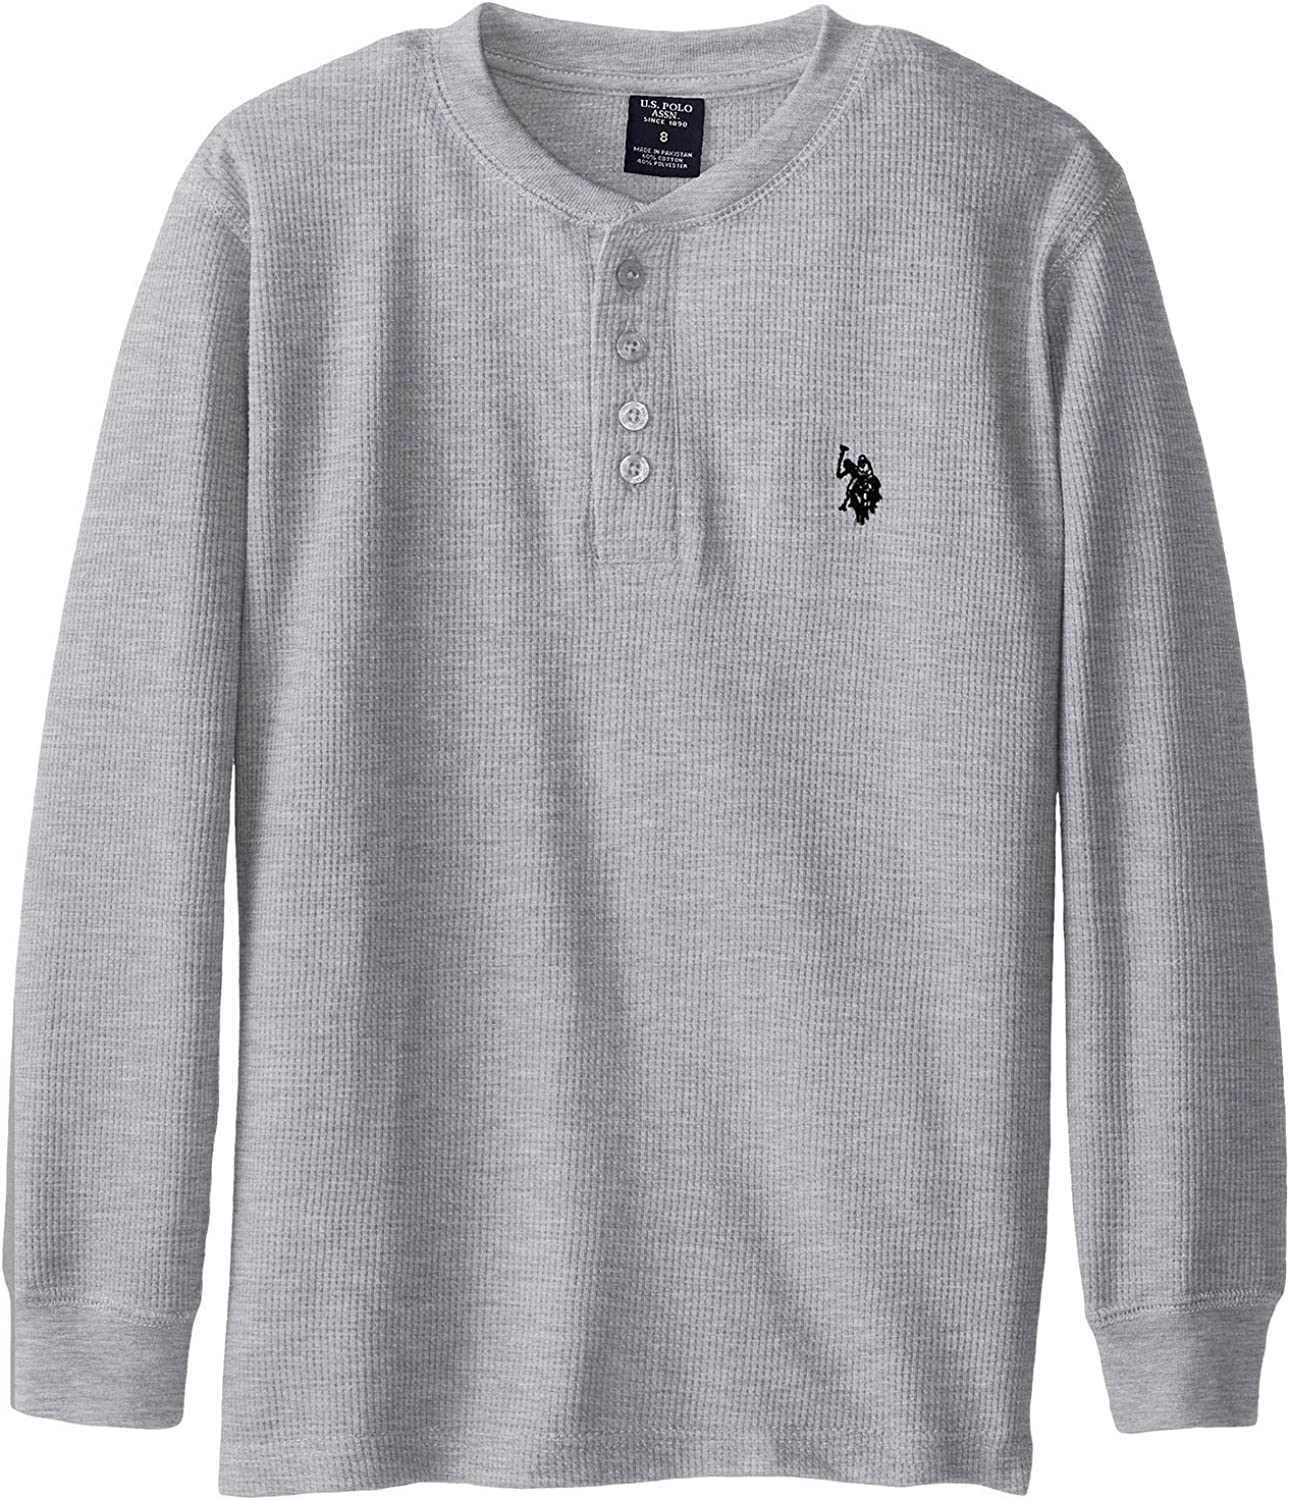 Polo Assn Boys Long Sleeve Solid Henley Shirt U.S